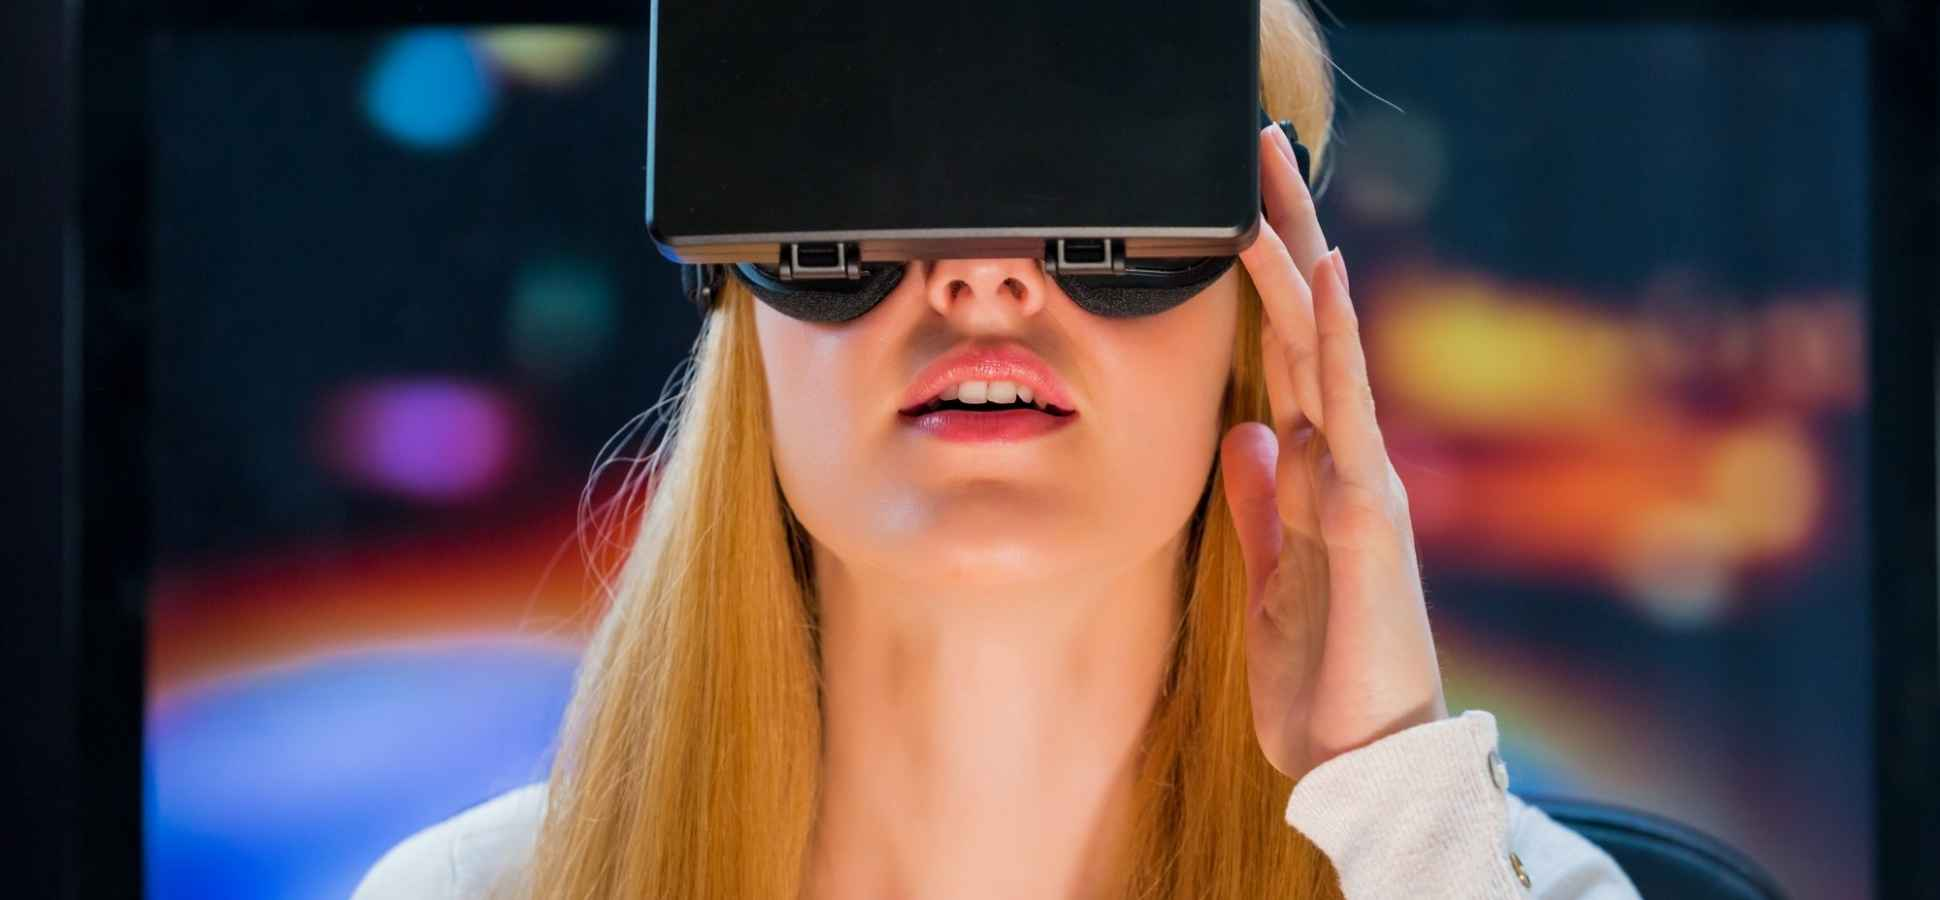 3 Insanely Cool Ways VR Will Change How We Market Products